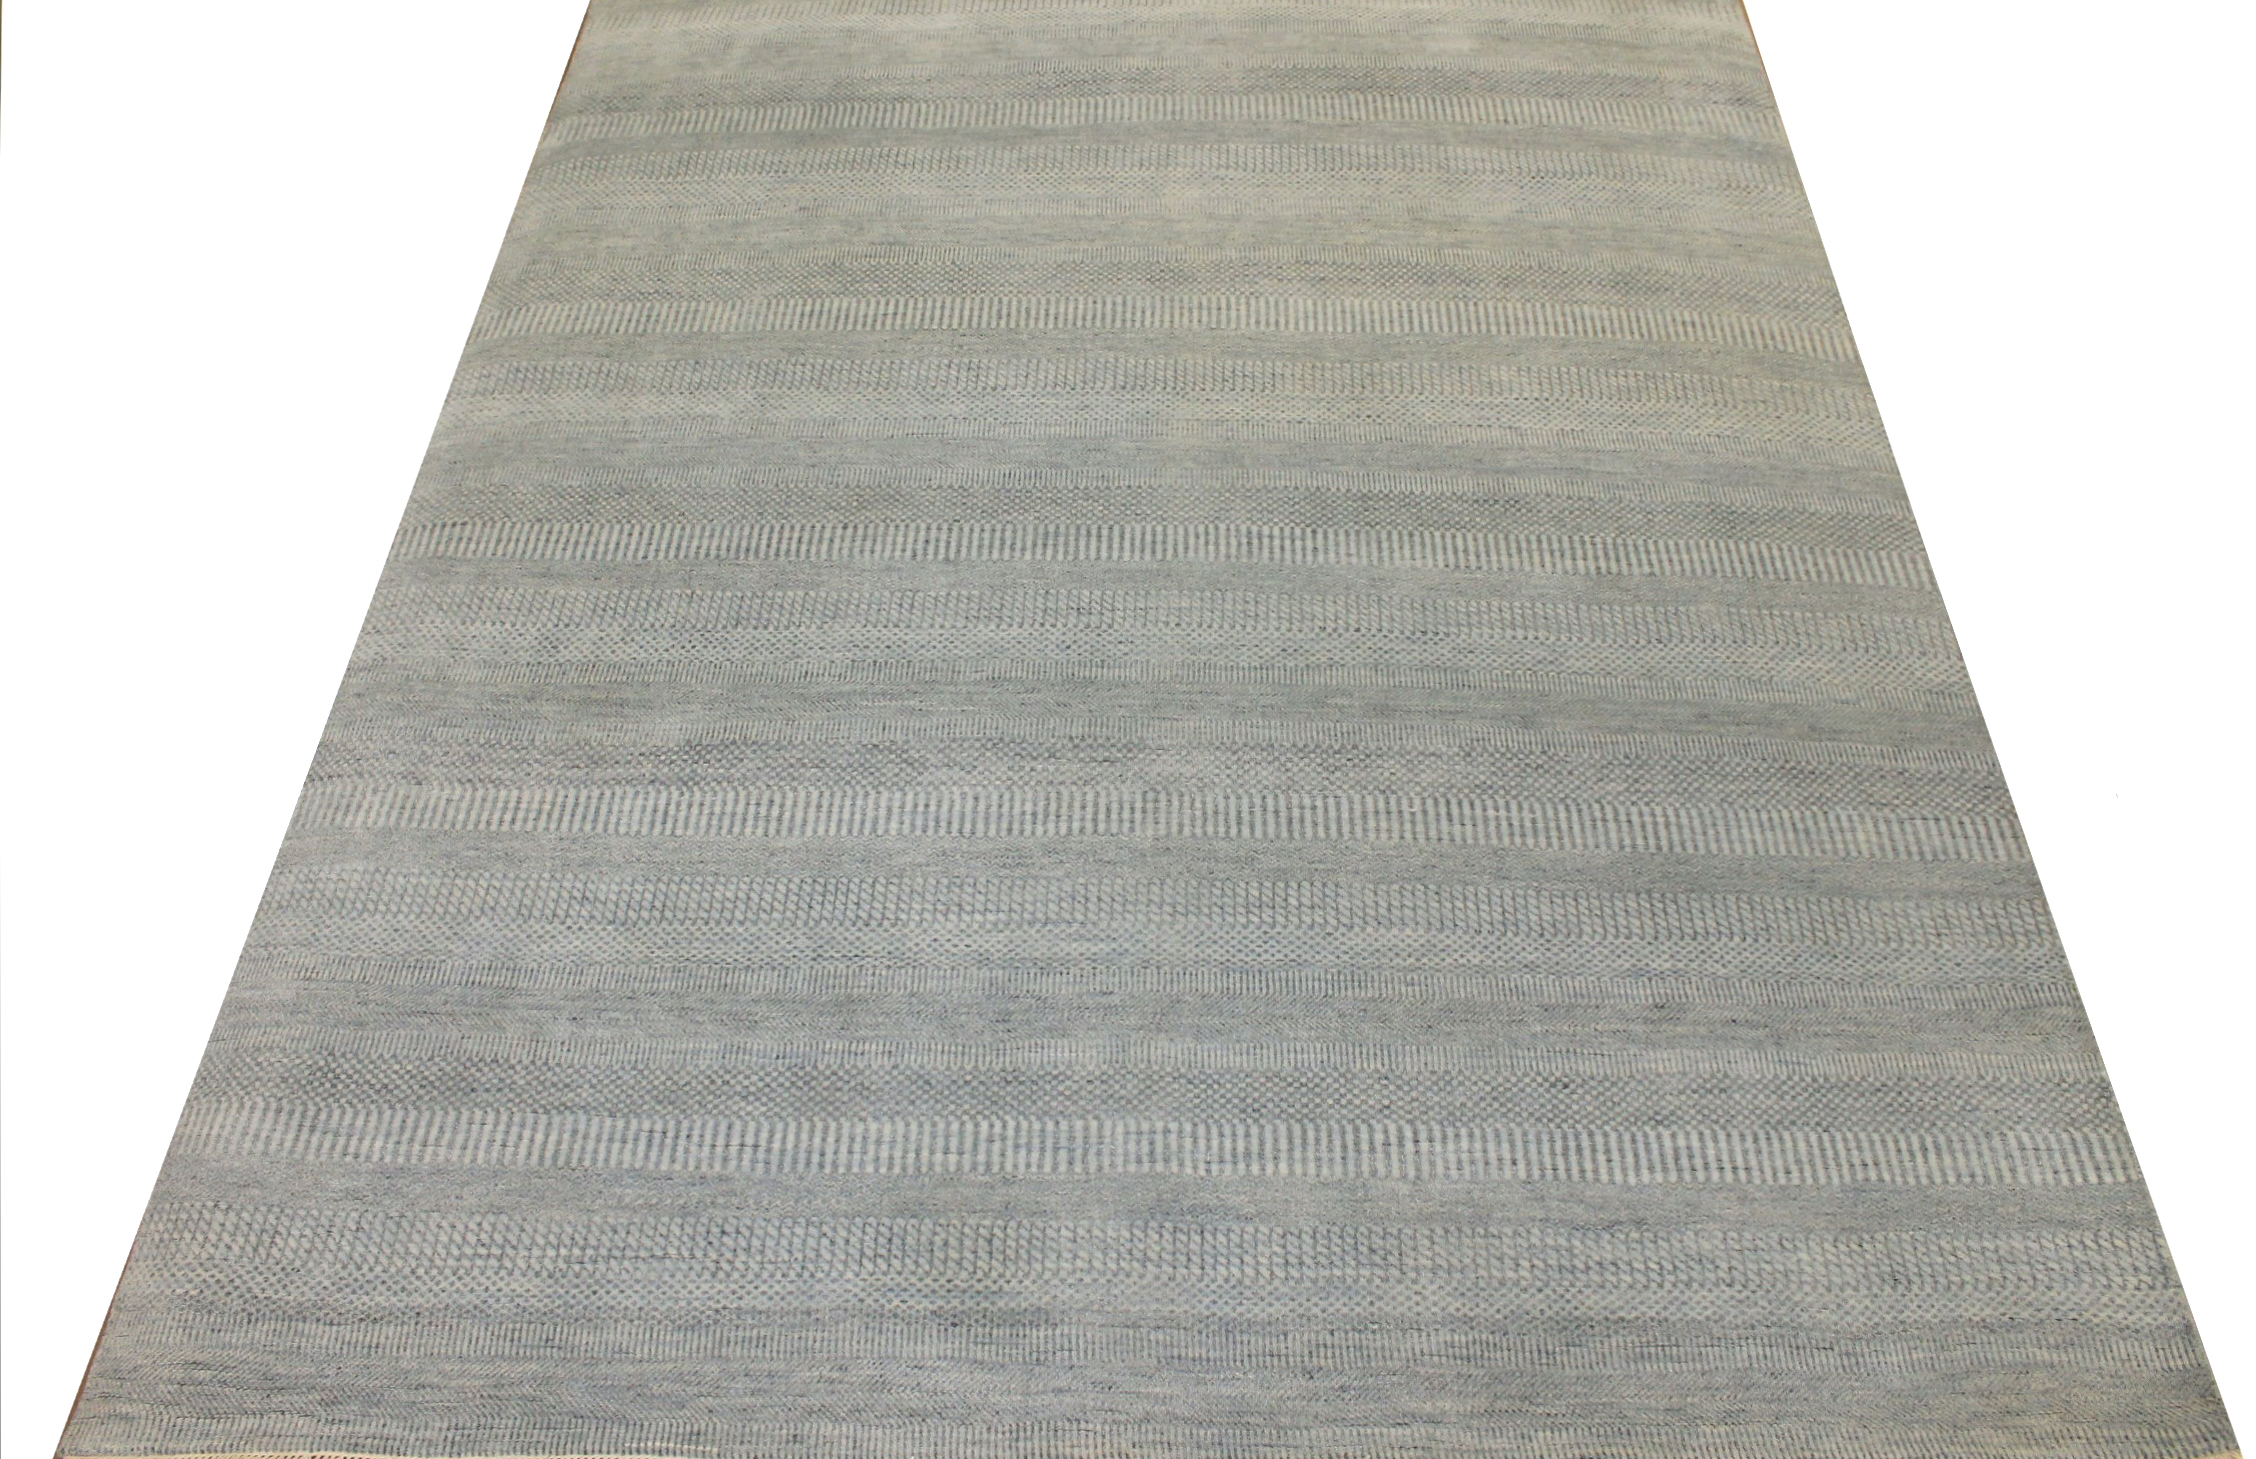 8x10 Casual Hand Knotted Wool & Viscose Area Rug - MR024072